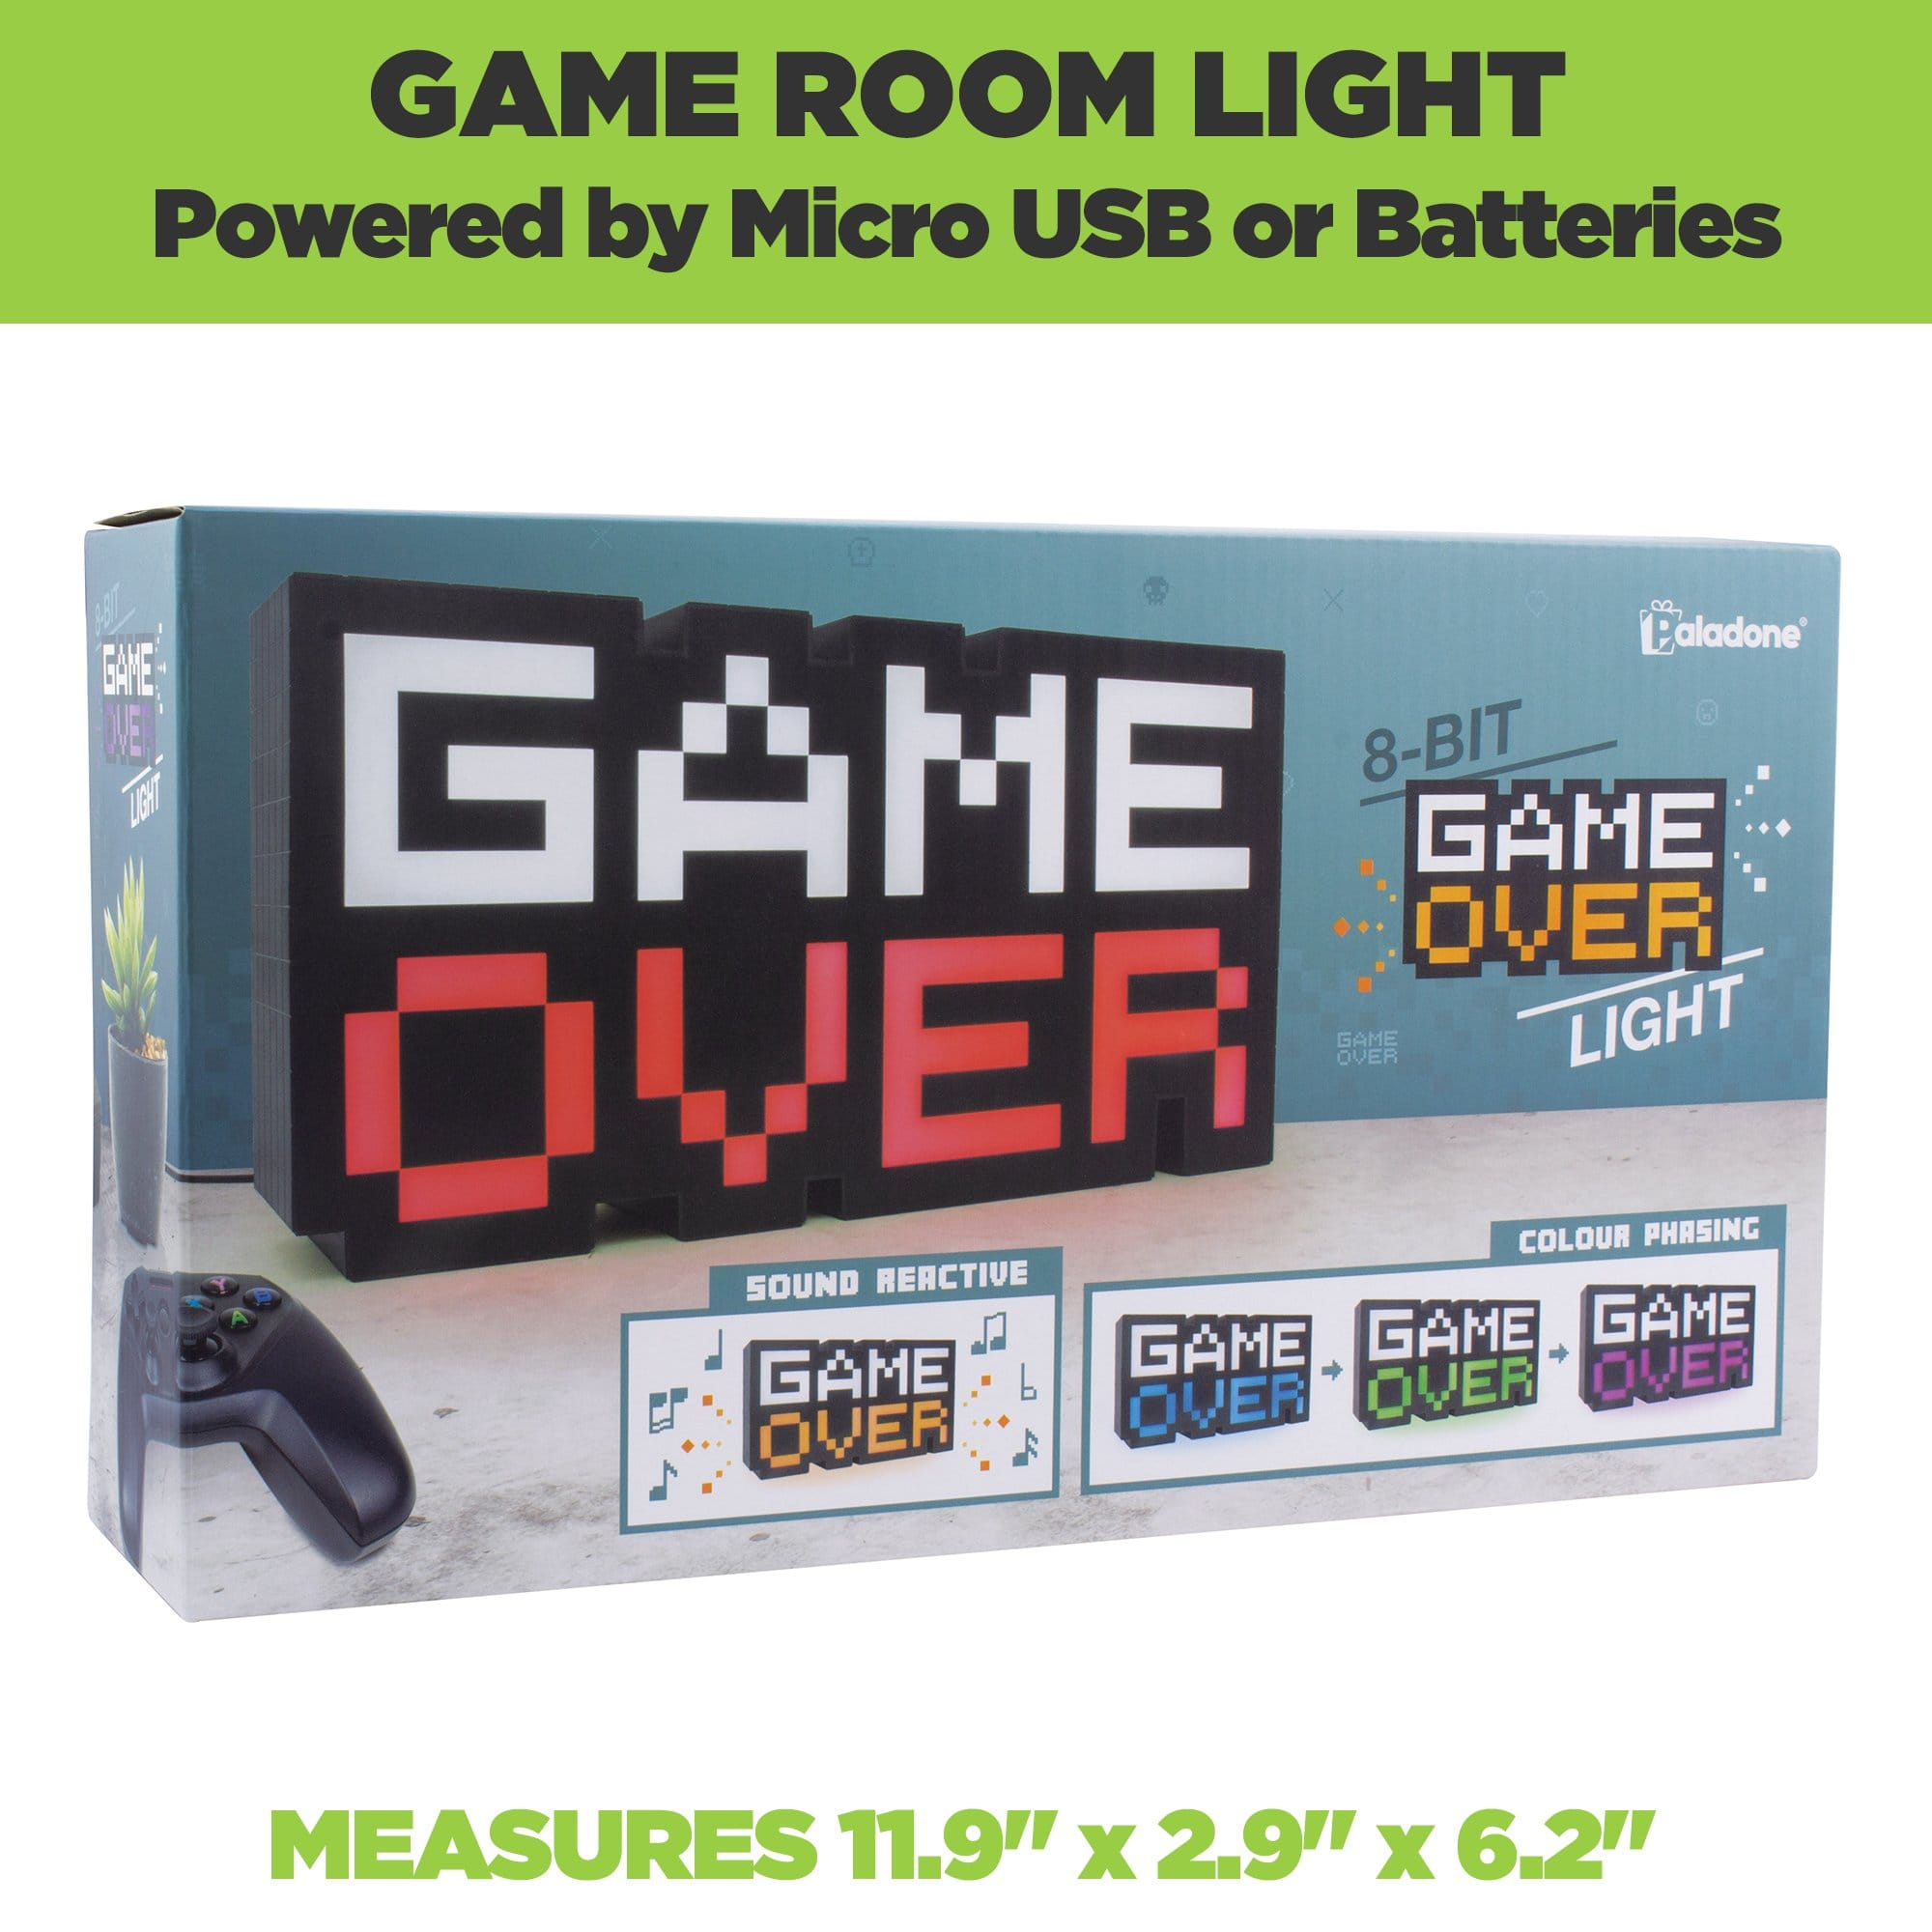 8-bit Game Over Light come in retro packaging and is powered by Micro USB or batteries.